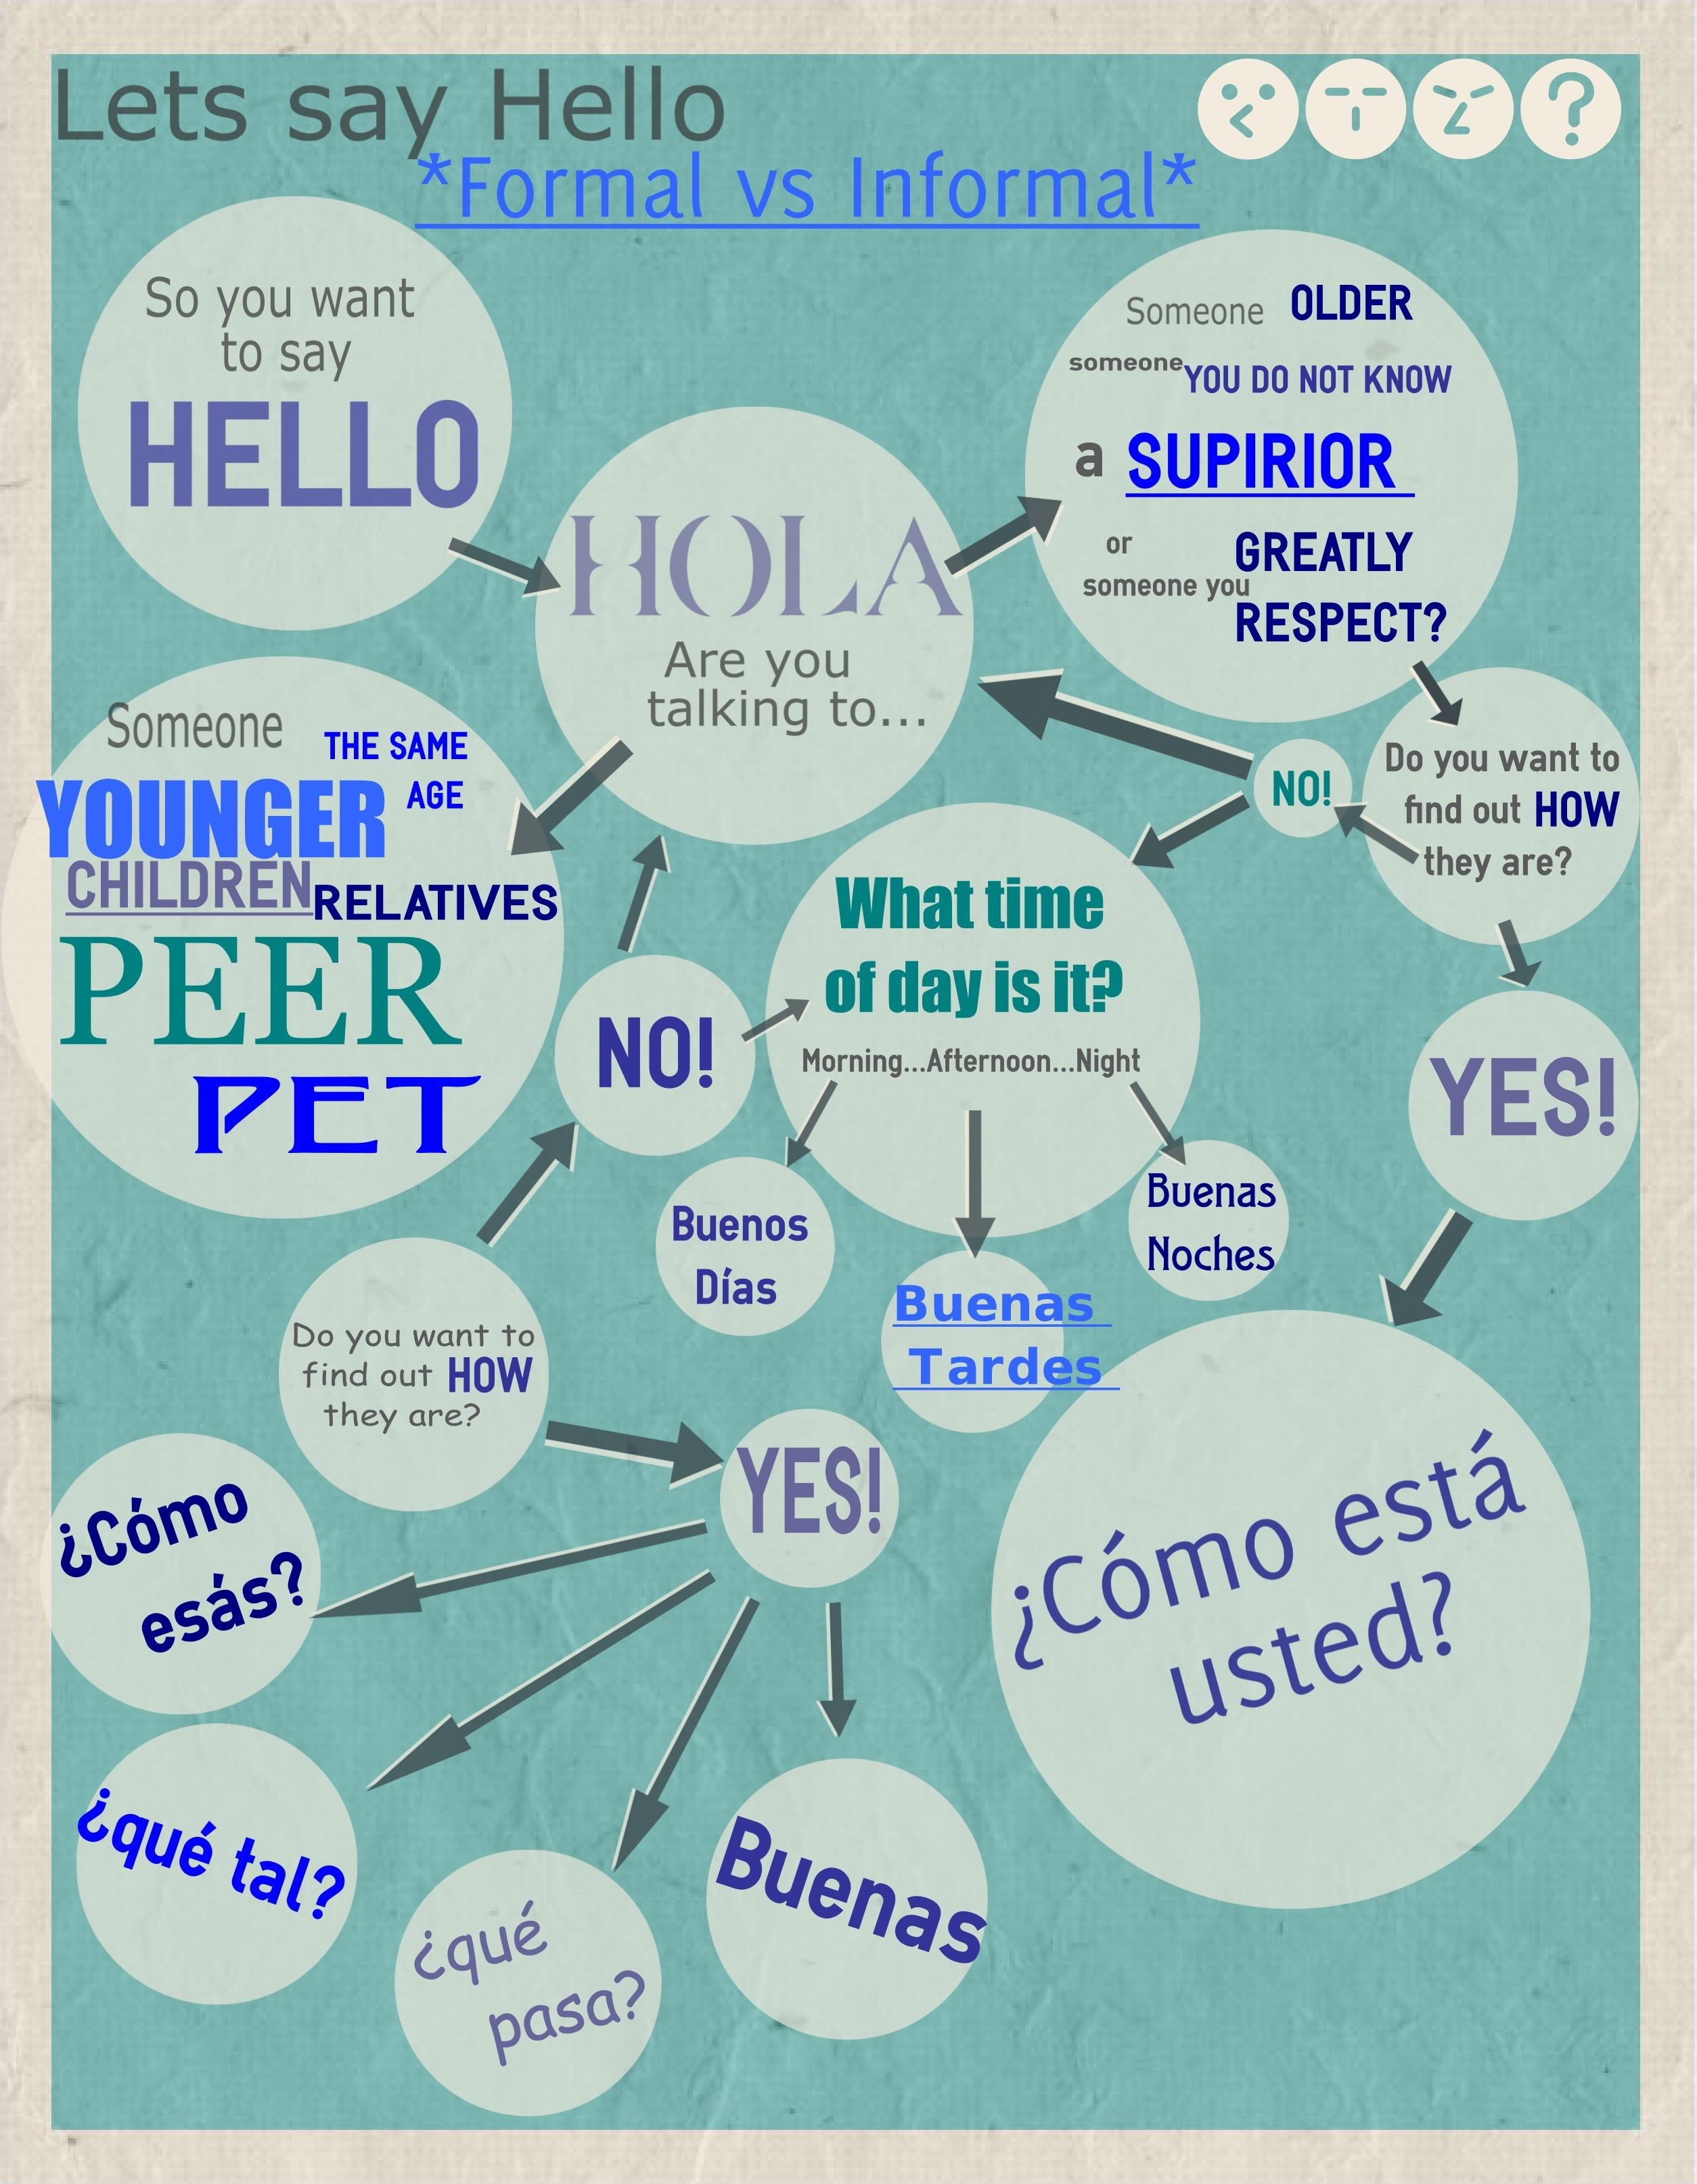 Spanish greetings info graphic hola formal informal infographic spanish greetings info graphic hola formal informal infographic learn spanish m4hsunfo